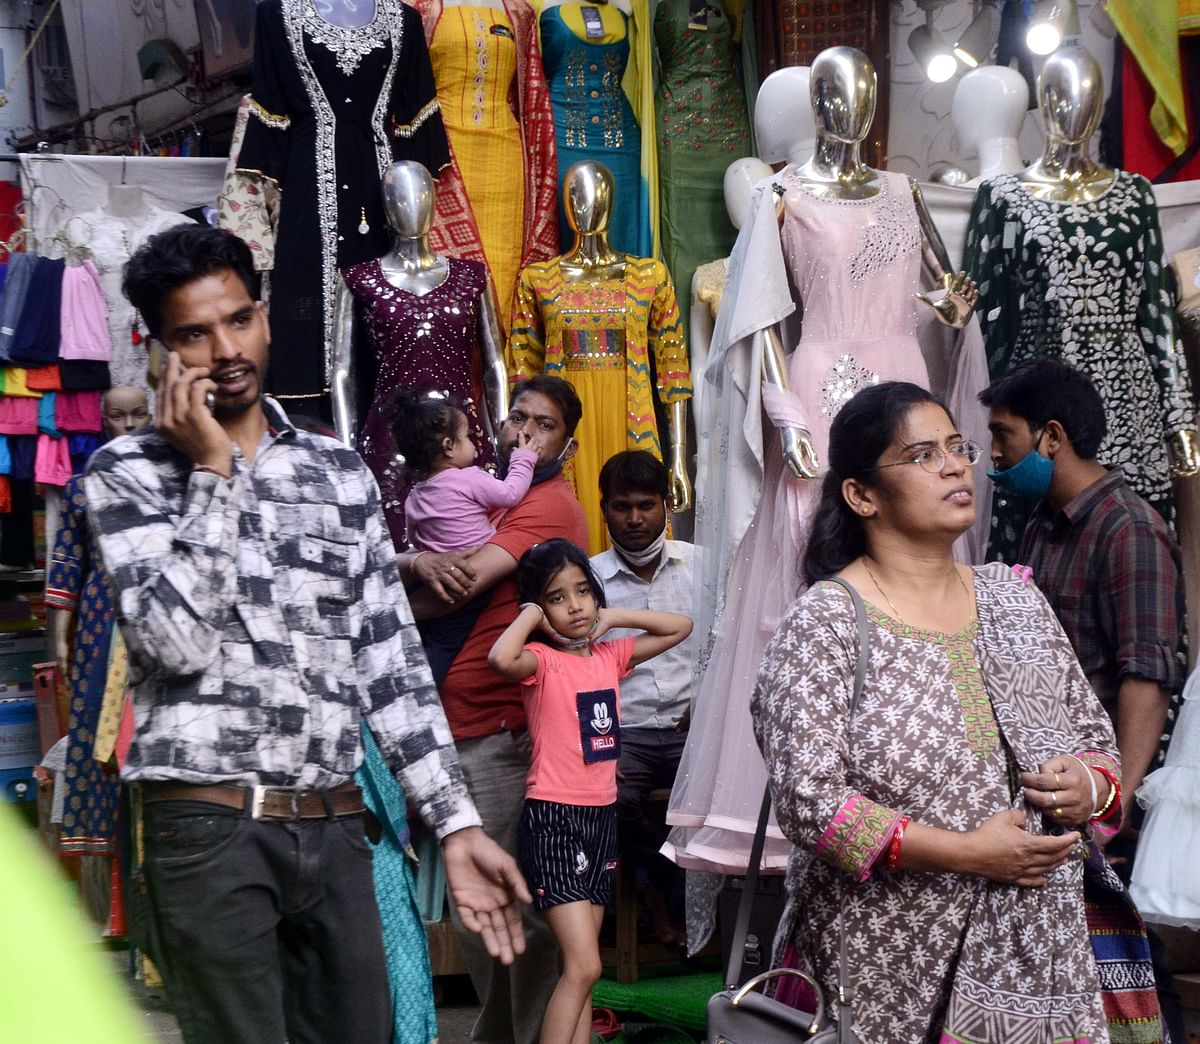 UNMASKED : A day after CM's visit, its back to square one at Peergate Bazar in Bhopal